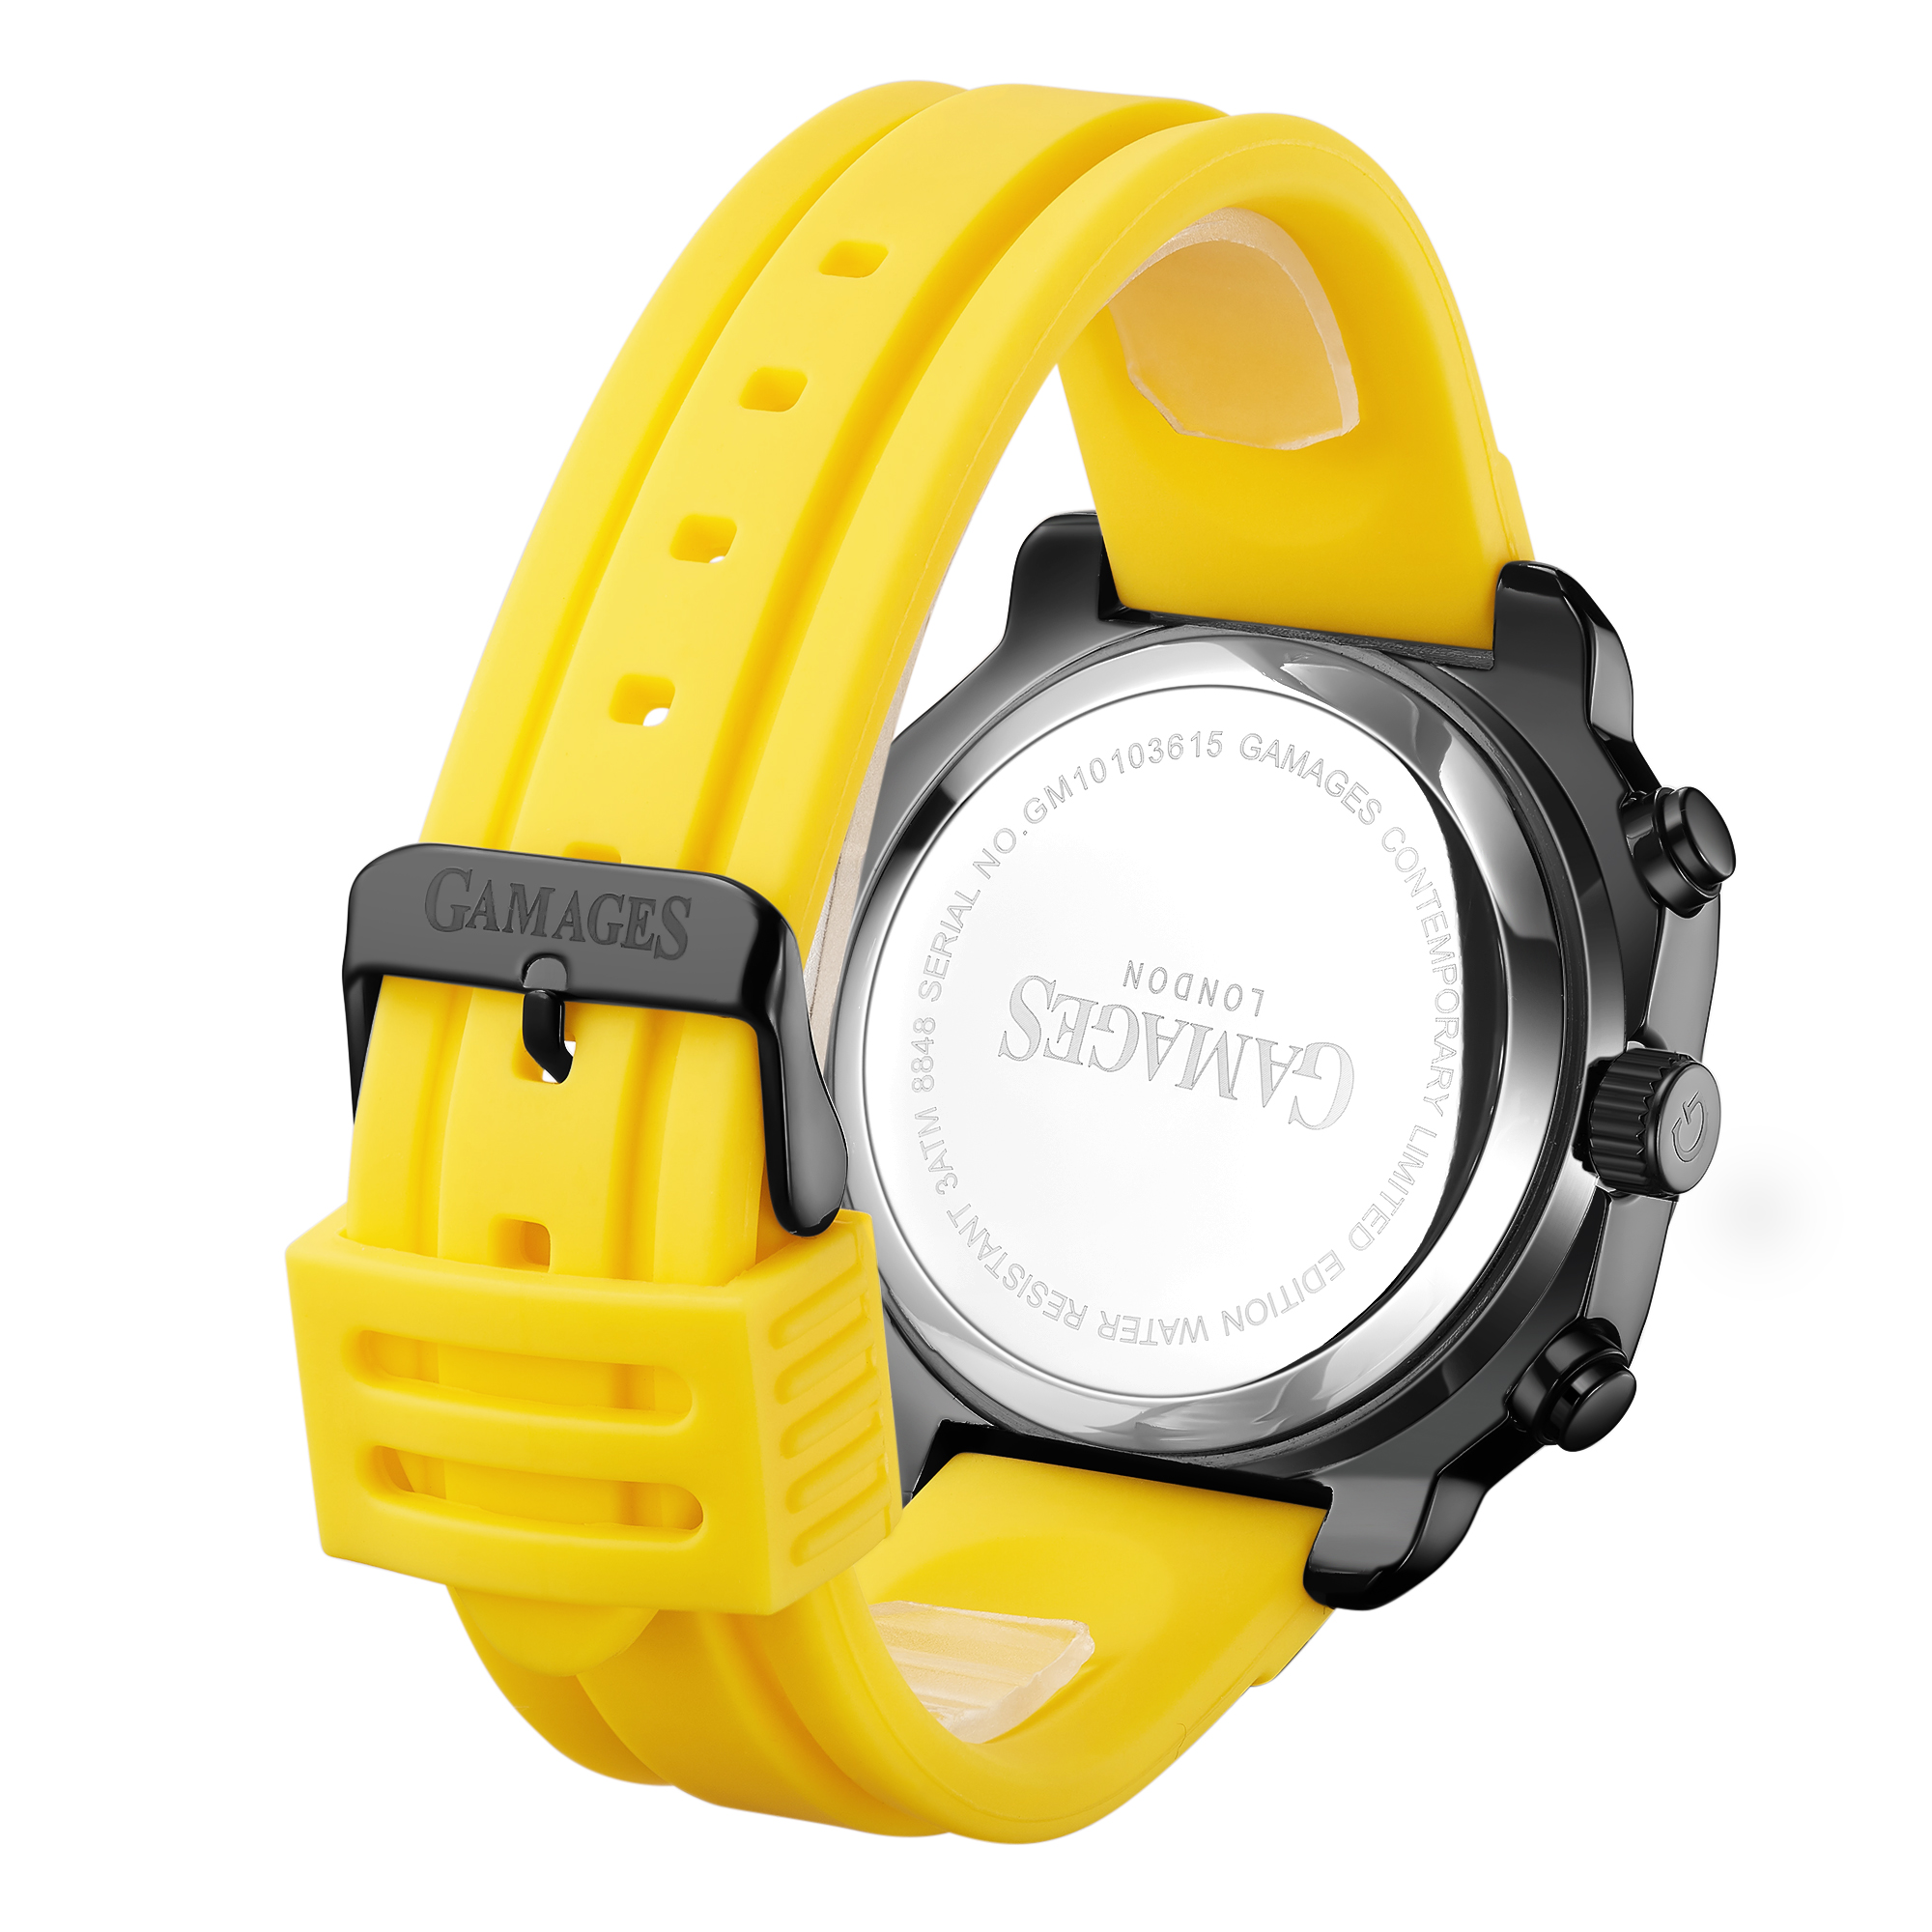 Ltd Edition Hand Assembled Gamages Contemporary Automatic Yellow – 5 Year Warranty & Free Delivery - Image 3 of 5